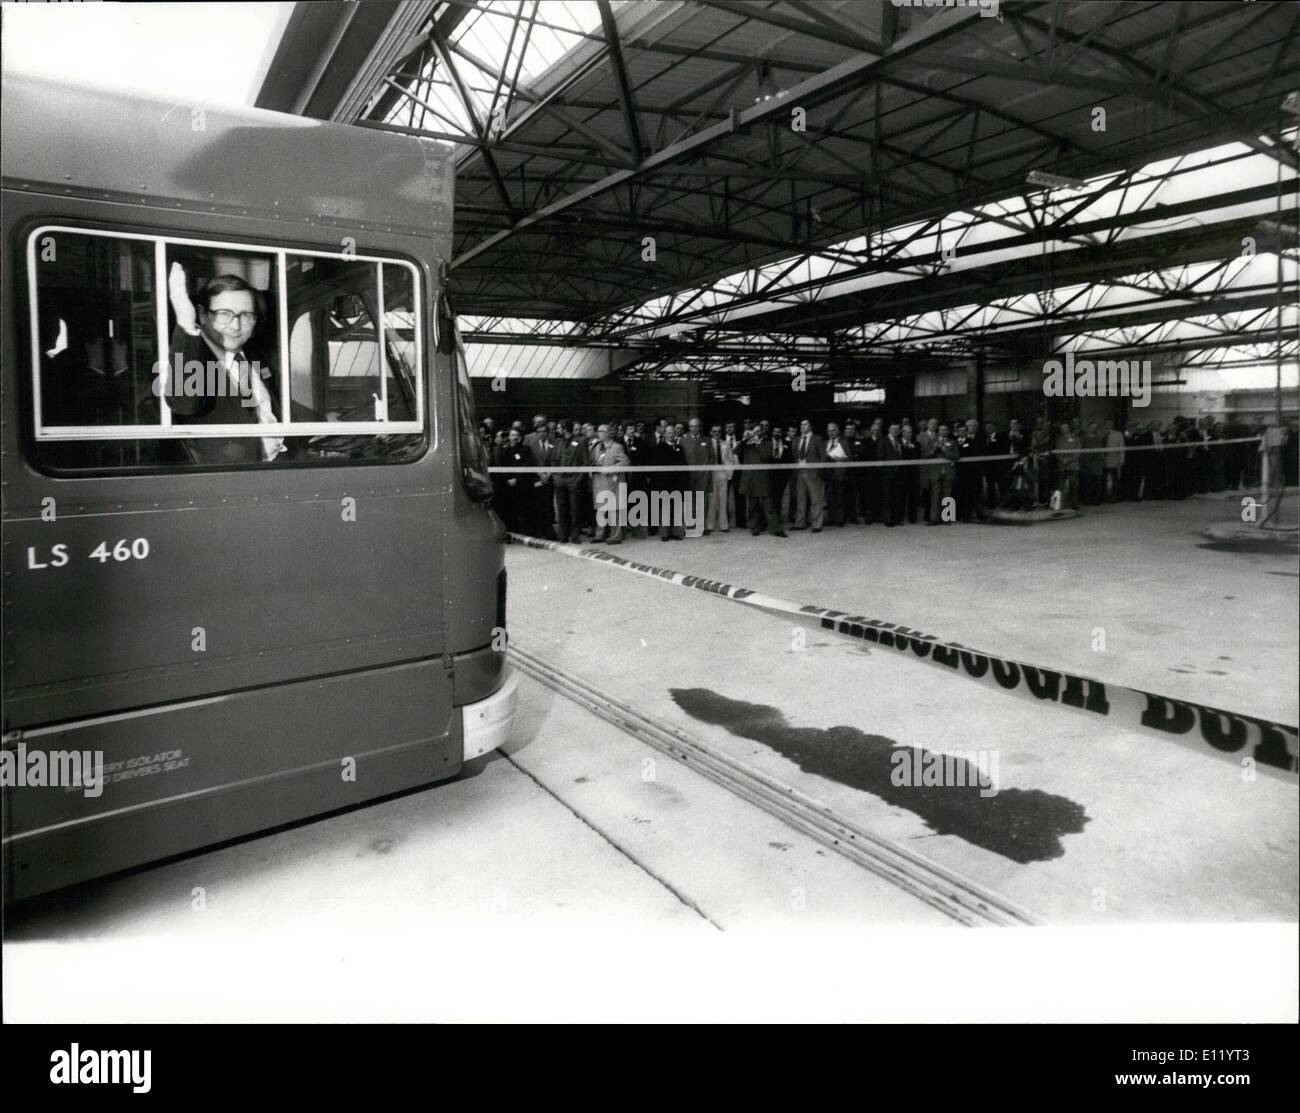 Apr. 04, 1981 - Ash Grove bus garage at Hackney opened: London's first completely new bus garage for 27 year Ash Grove Hackney was , officially opened today by Mr Ian Mcleod, Chairman of the London Transport passengers Committee , this new garage cost 3 1/2 million to build, and will house 170 buses serving 12 routes. Photo shows Dr David Quarmby, Managing Director of London Buses, who is a qualified driver, seen driving the first bus through the tape at the new Ash Grove buse garage today. - Stock Image